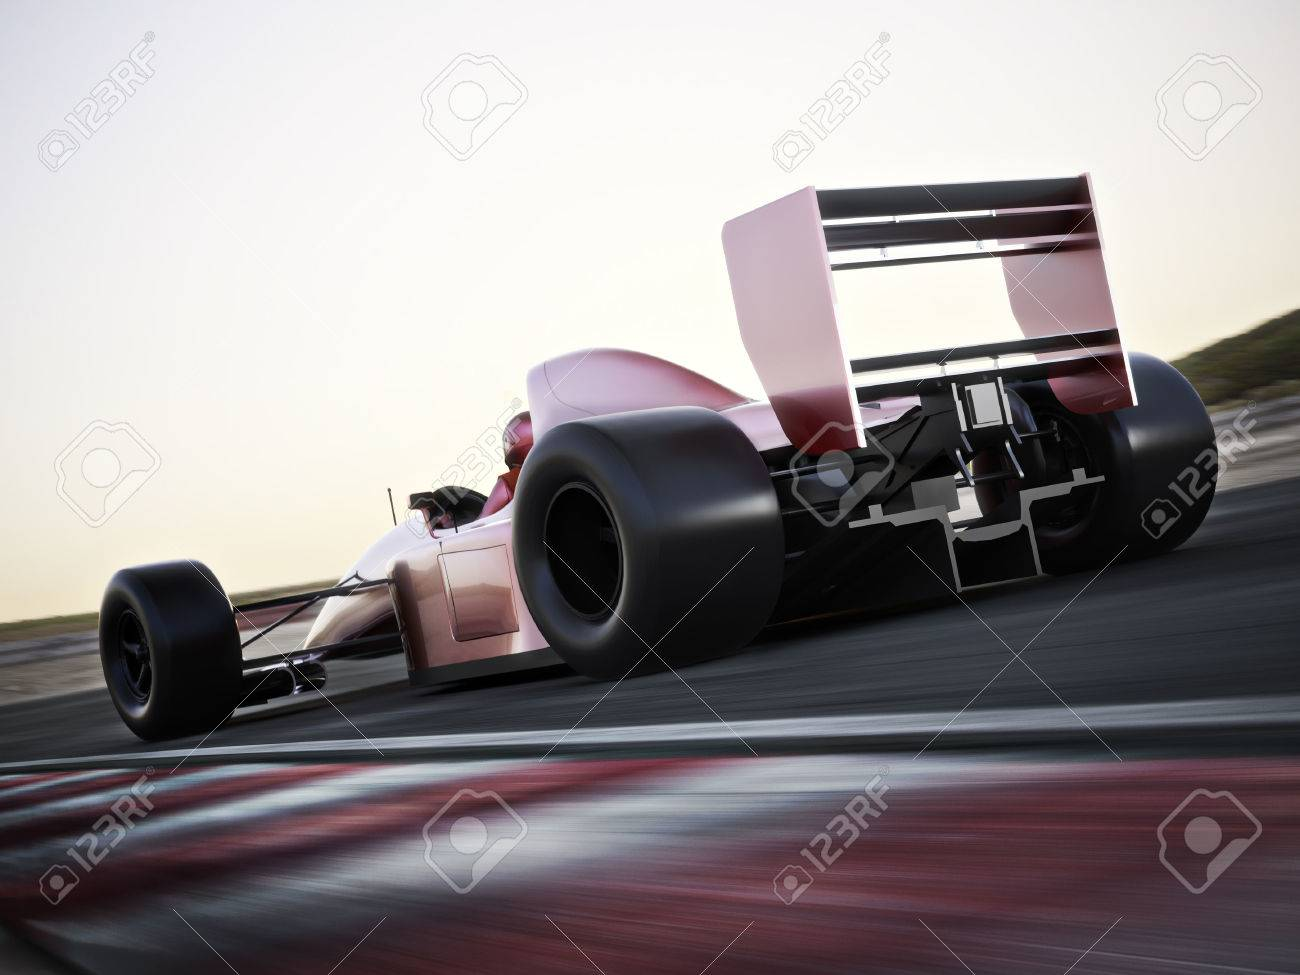 Race car back view speeding down a track with motion blur. Photo realistic 3d scene with room for text or copy space Standard-Bild - 43044679